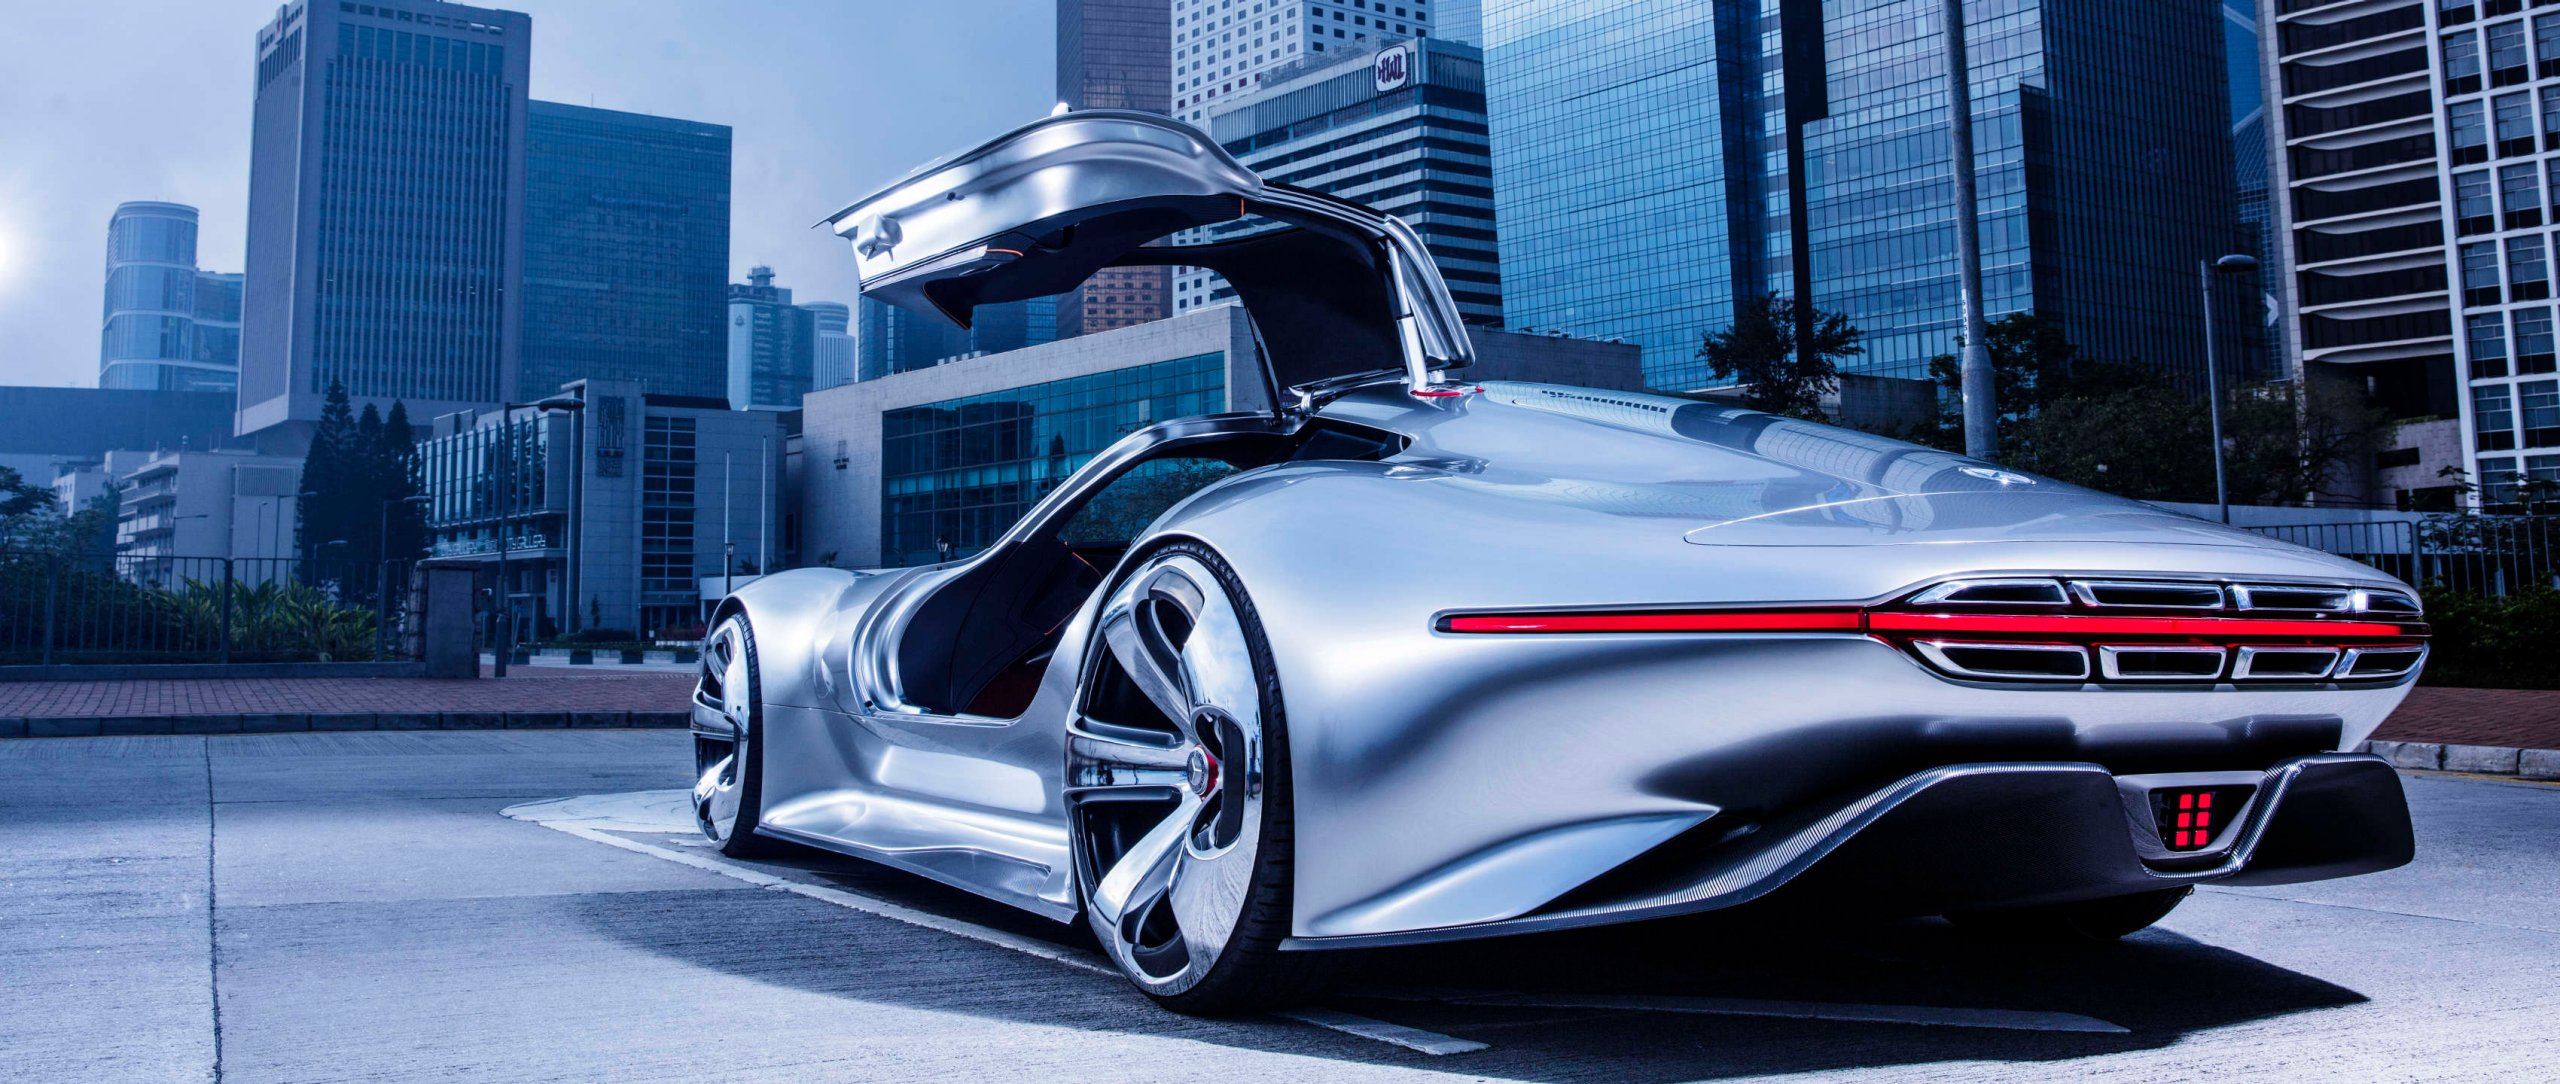 42+ Mercedes Benz Amg Vision Gran Turismo Wallpaper  Pictures